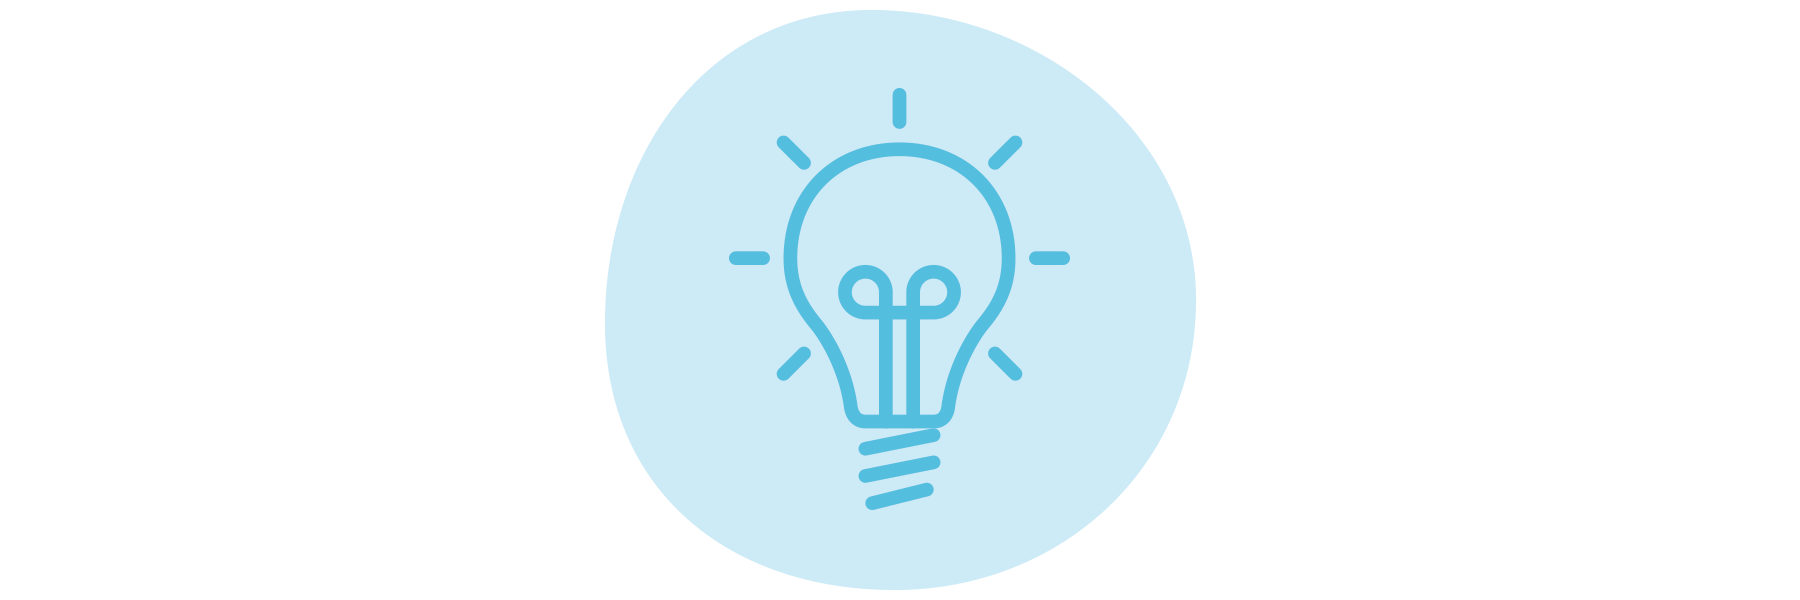 A blue hand-drawn light bulb icon.